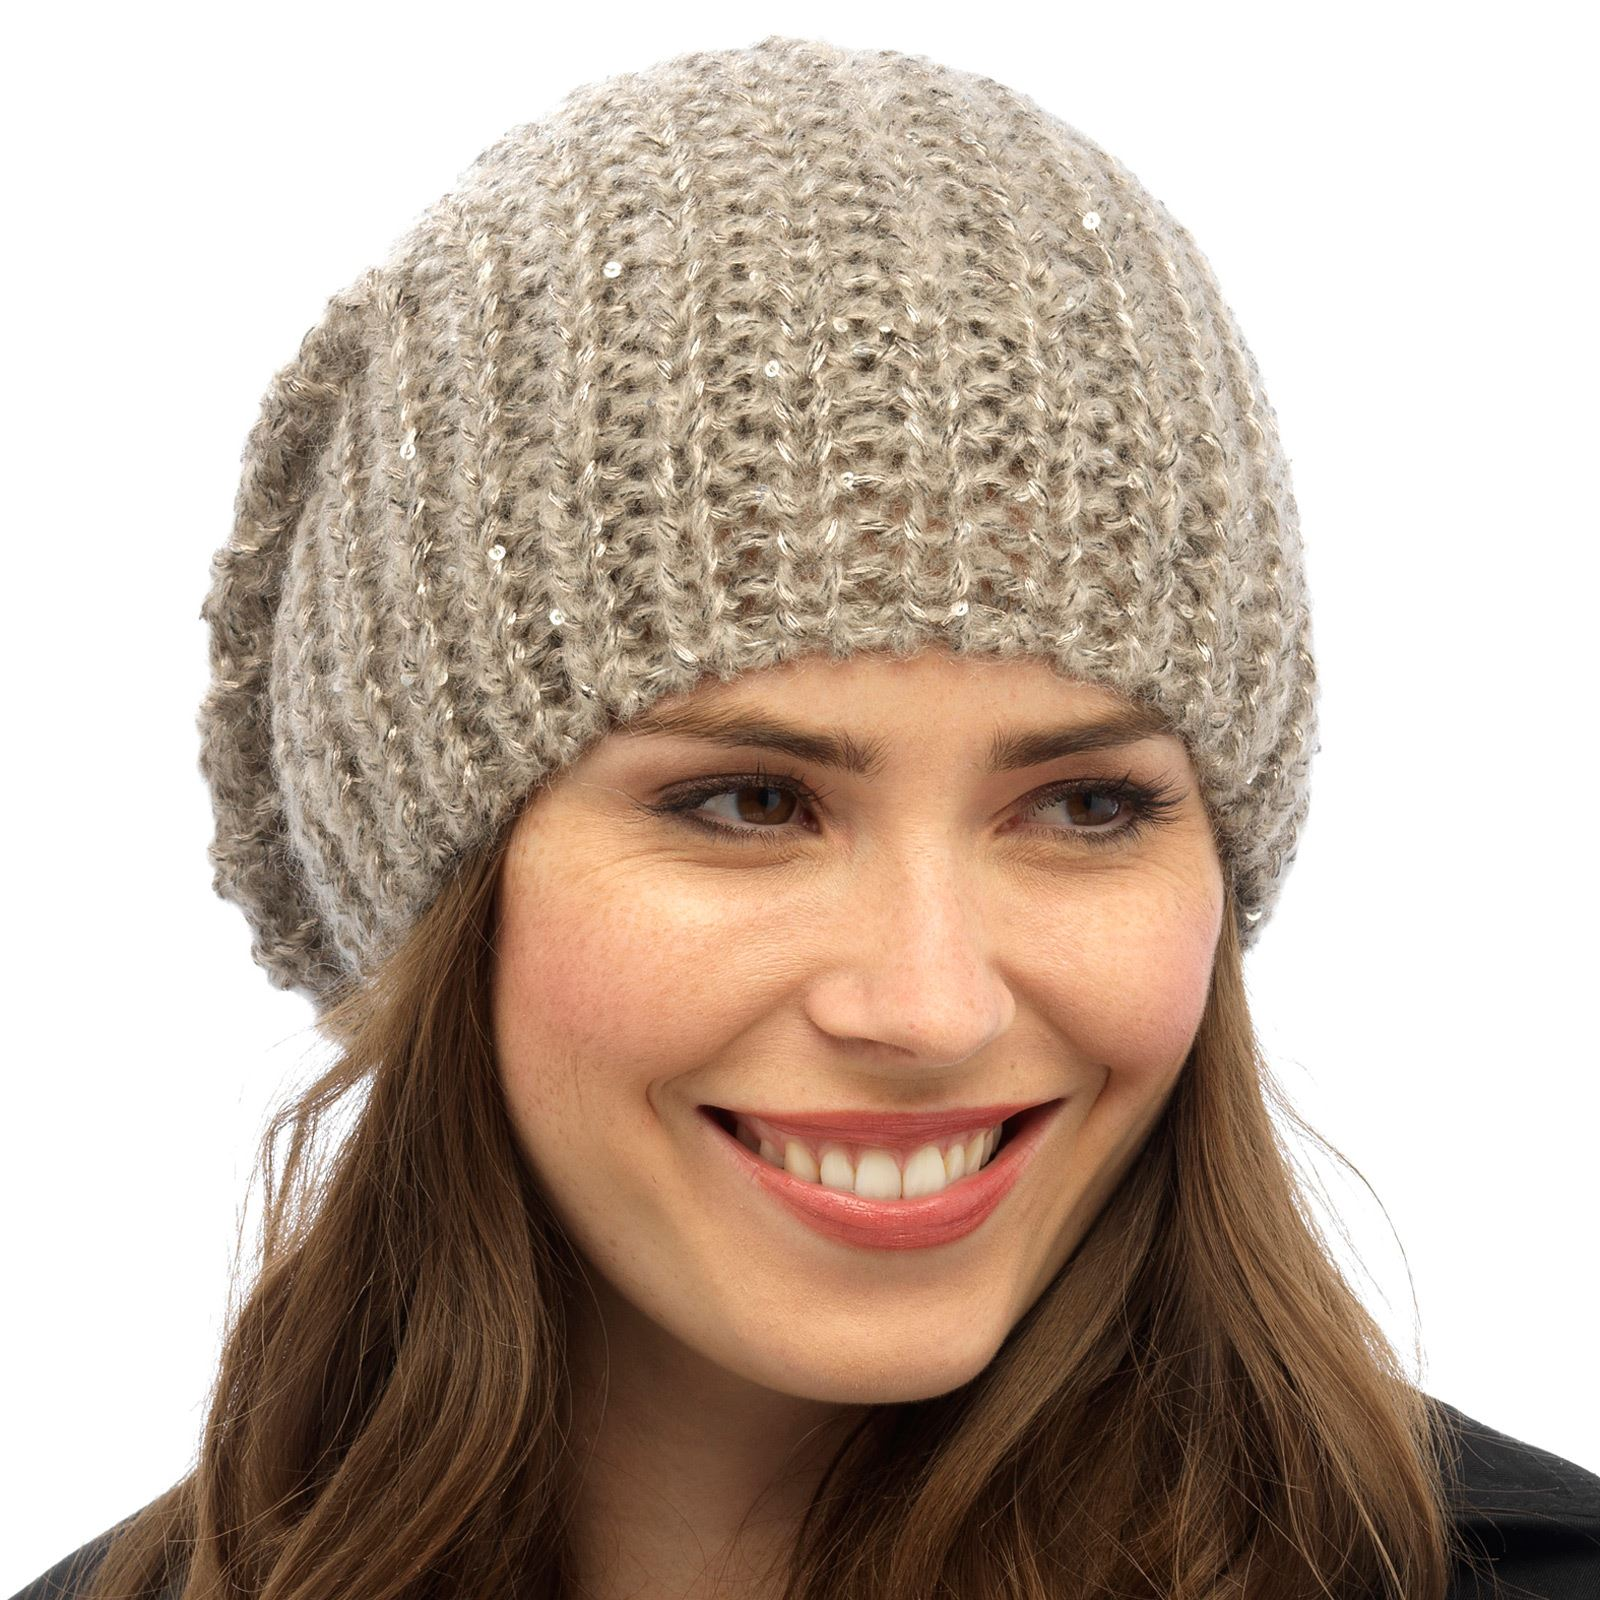 b9f2fb5207ca15 Details about Ladies Chunky Rib Knit Sequin Slouch Womens Warm Beanie Hat  Grey Blue Lavender